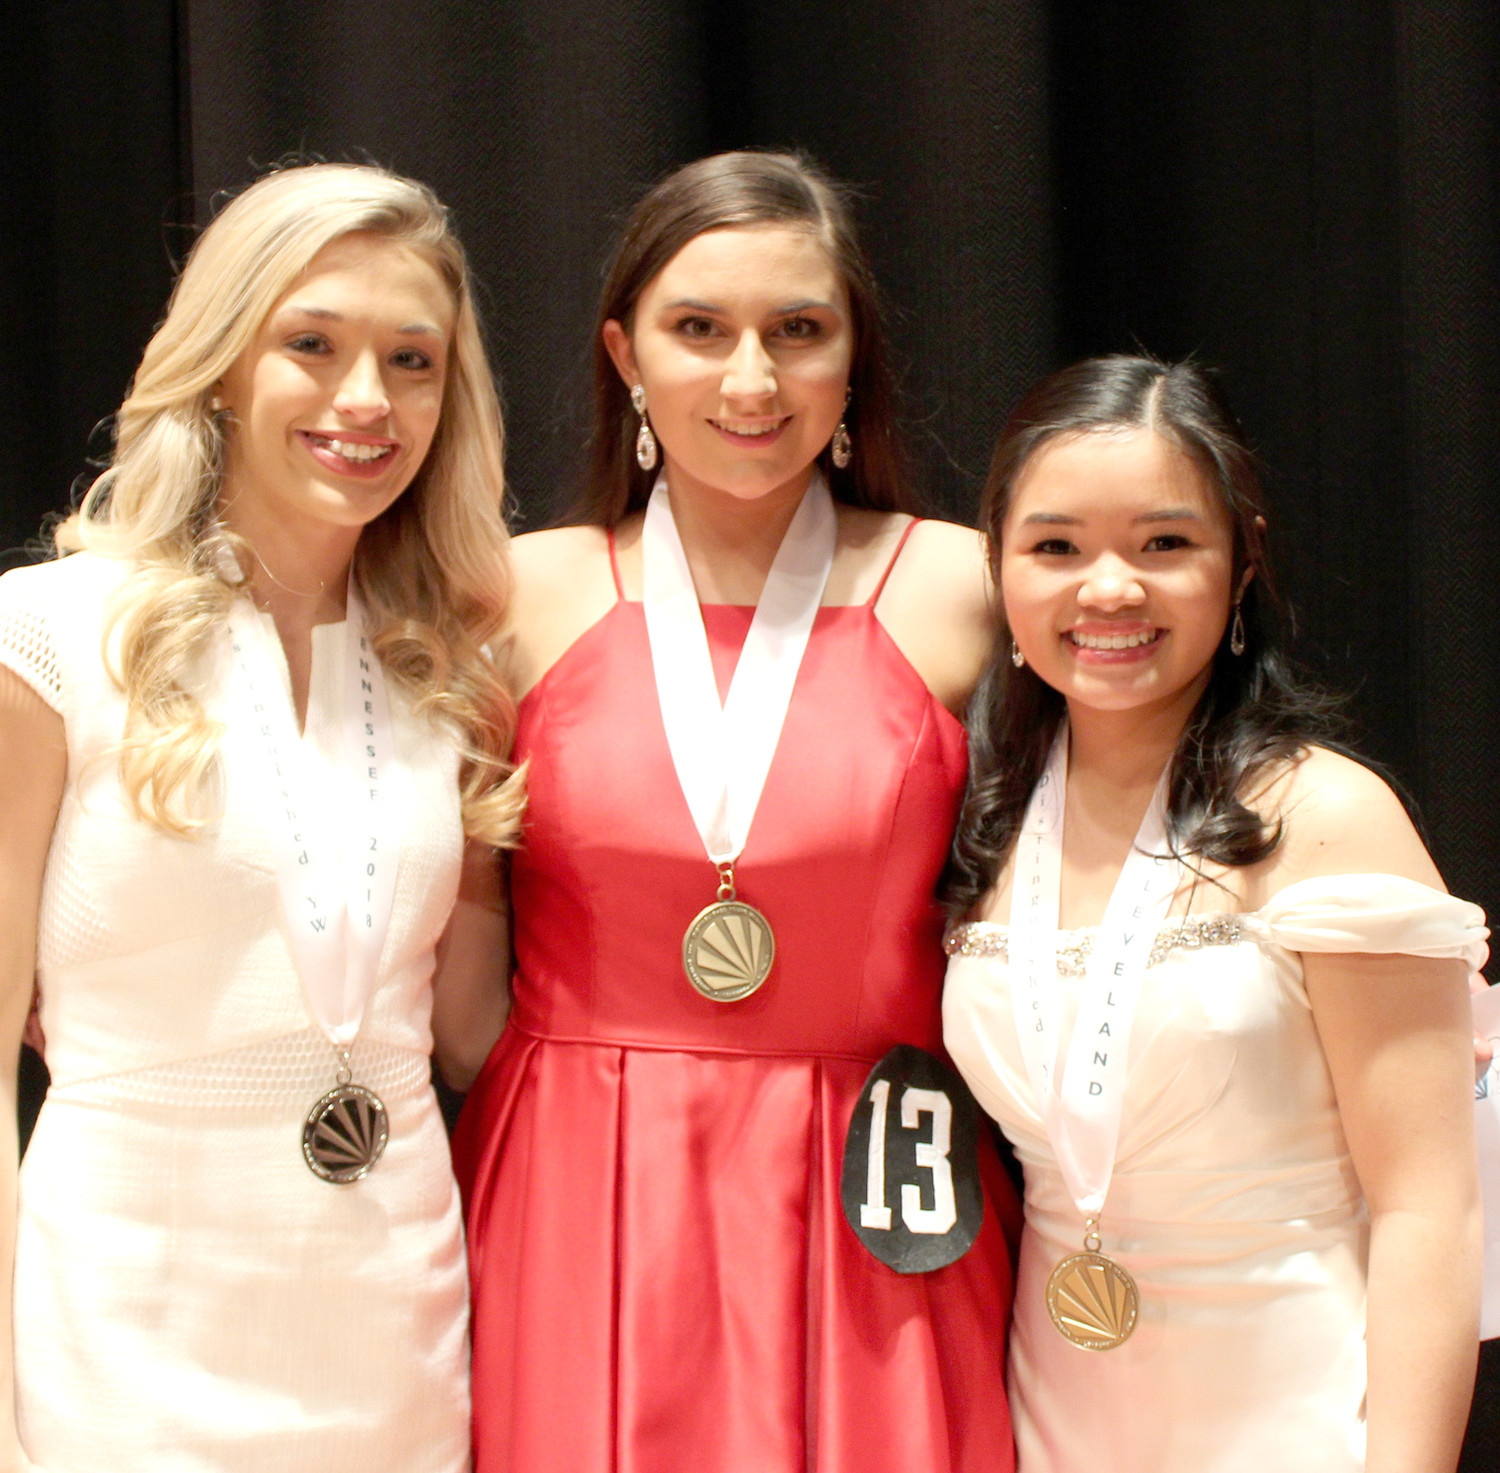 ELENA BURTON, the Distinguished Young Woman of Cleveland for 2019, center, is joined by the most recent DYW of Tennessee, Leah Humble, left, and the previous DYW of Cleveland, Jasmine Ngo.